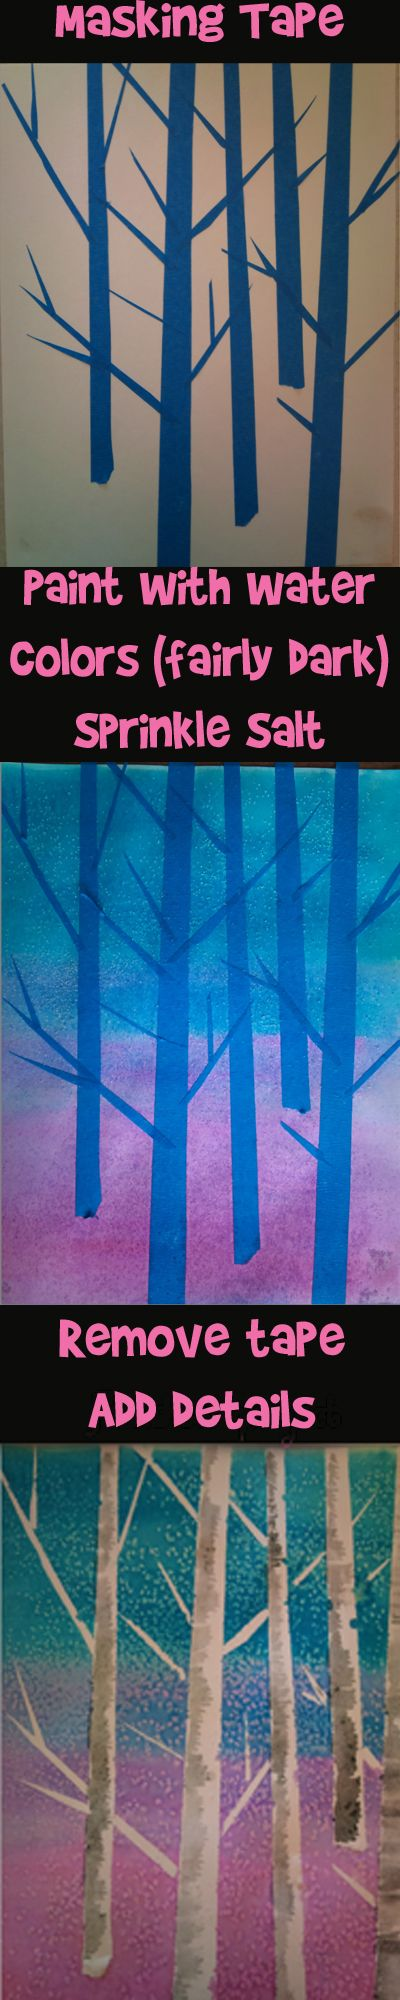 Salt Water Color Project: You only need masking tape, salt, water colors, paper and brushes.